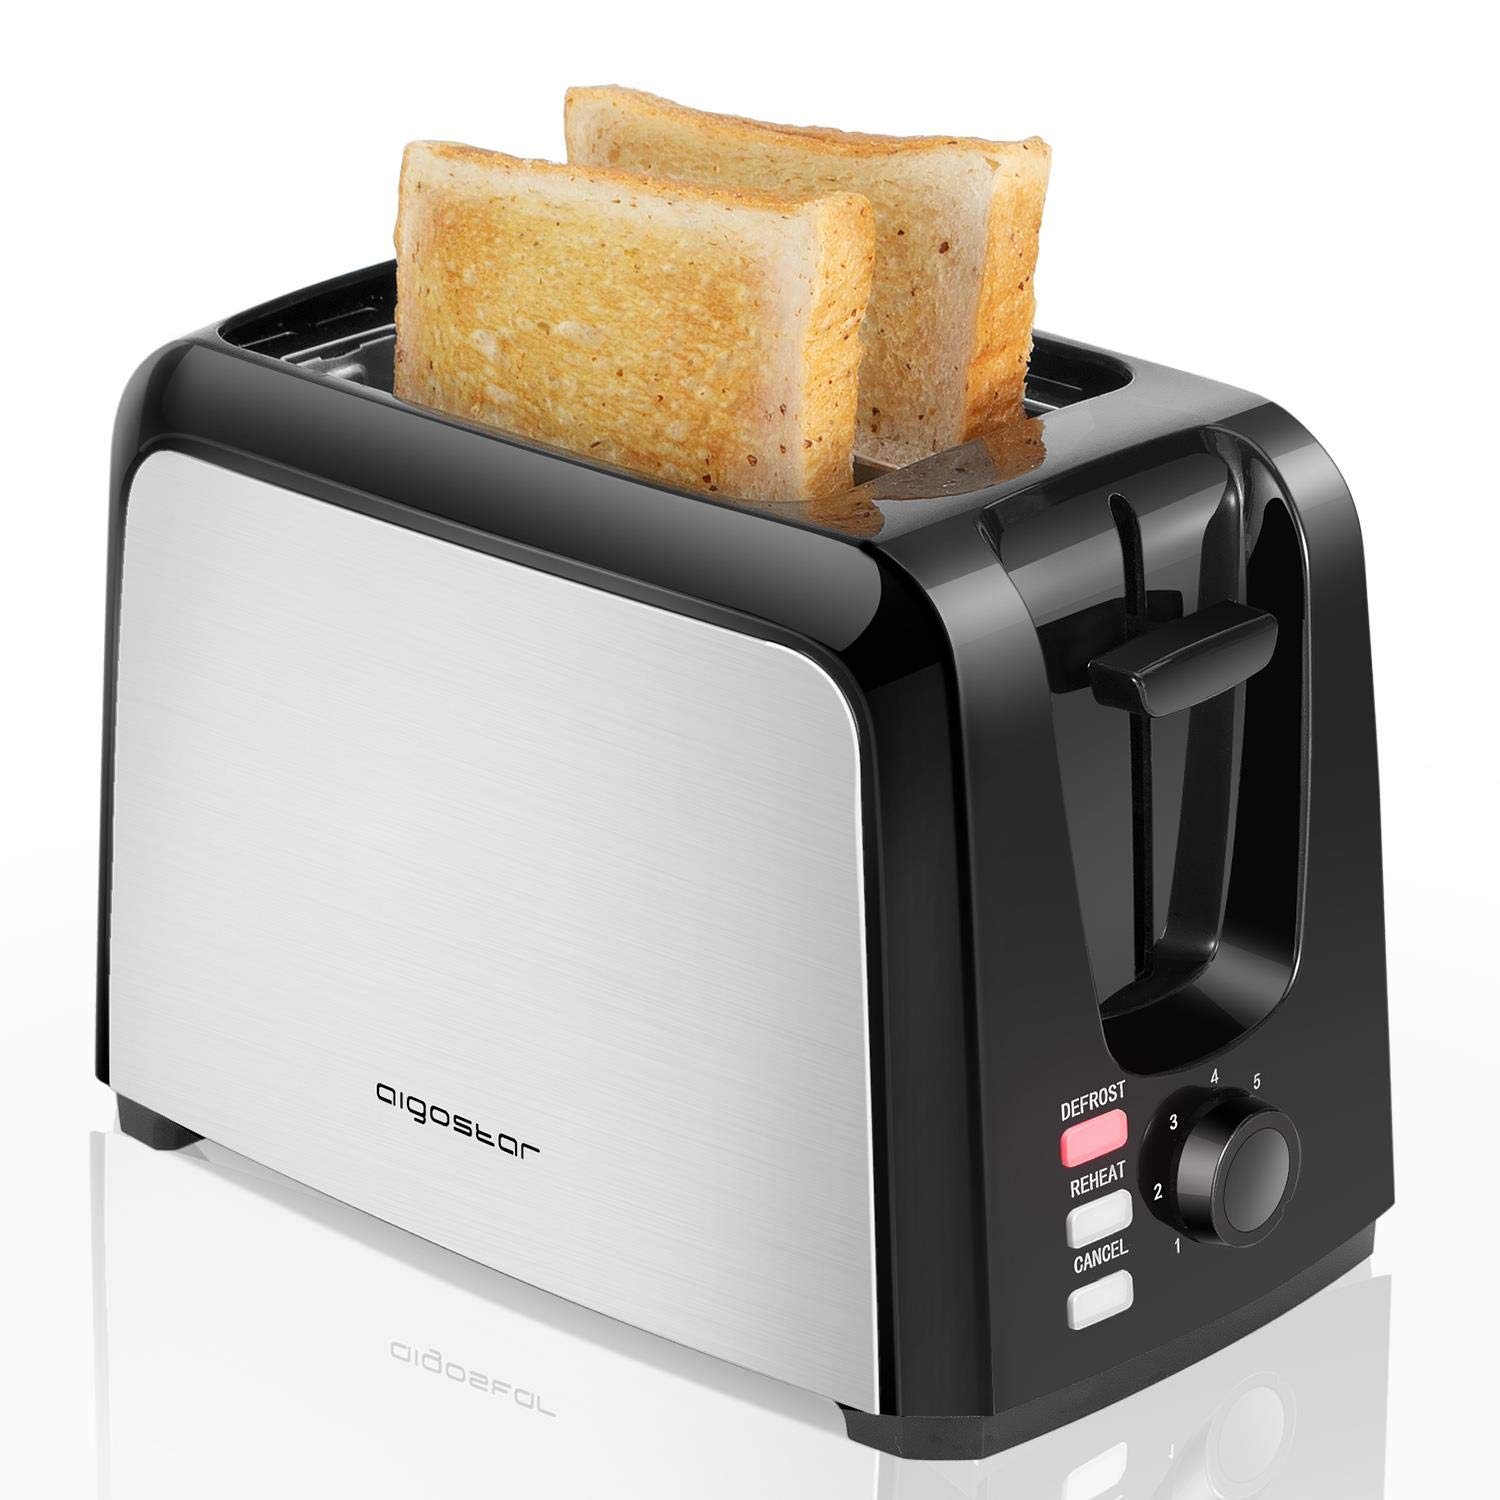 Aigostar Totoro - 2 Slice Toaster, Toasters with 2 Wide Slots, Compact Brushed Stainless Steel Toasters with Pop Up Reheat Defrost Functions, 7-Shade Control & Removable Crumb Tray by Aigostar